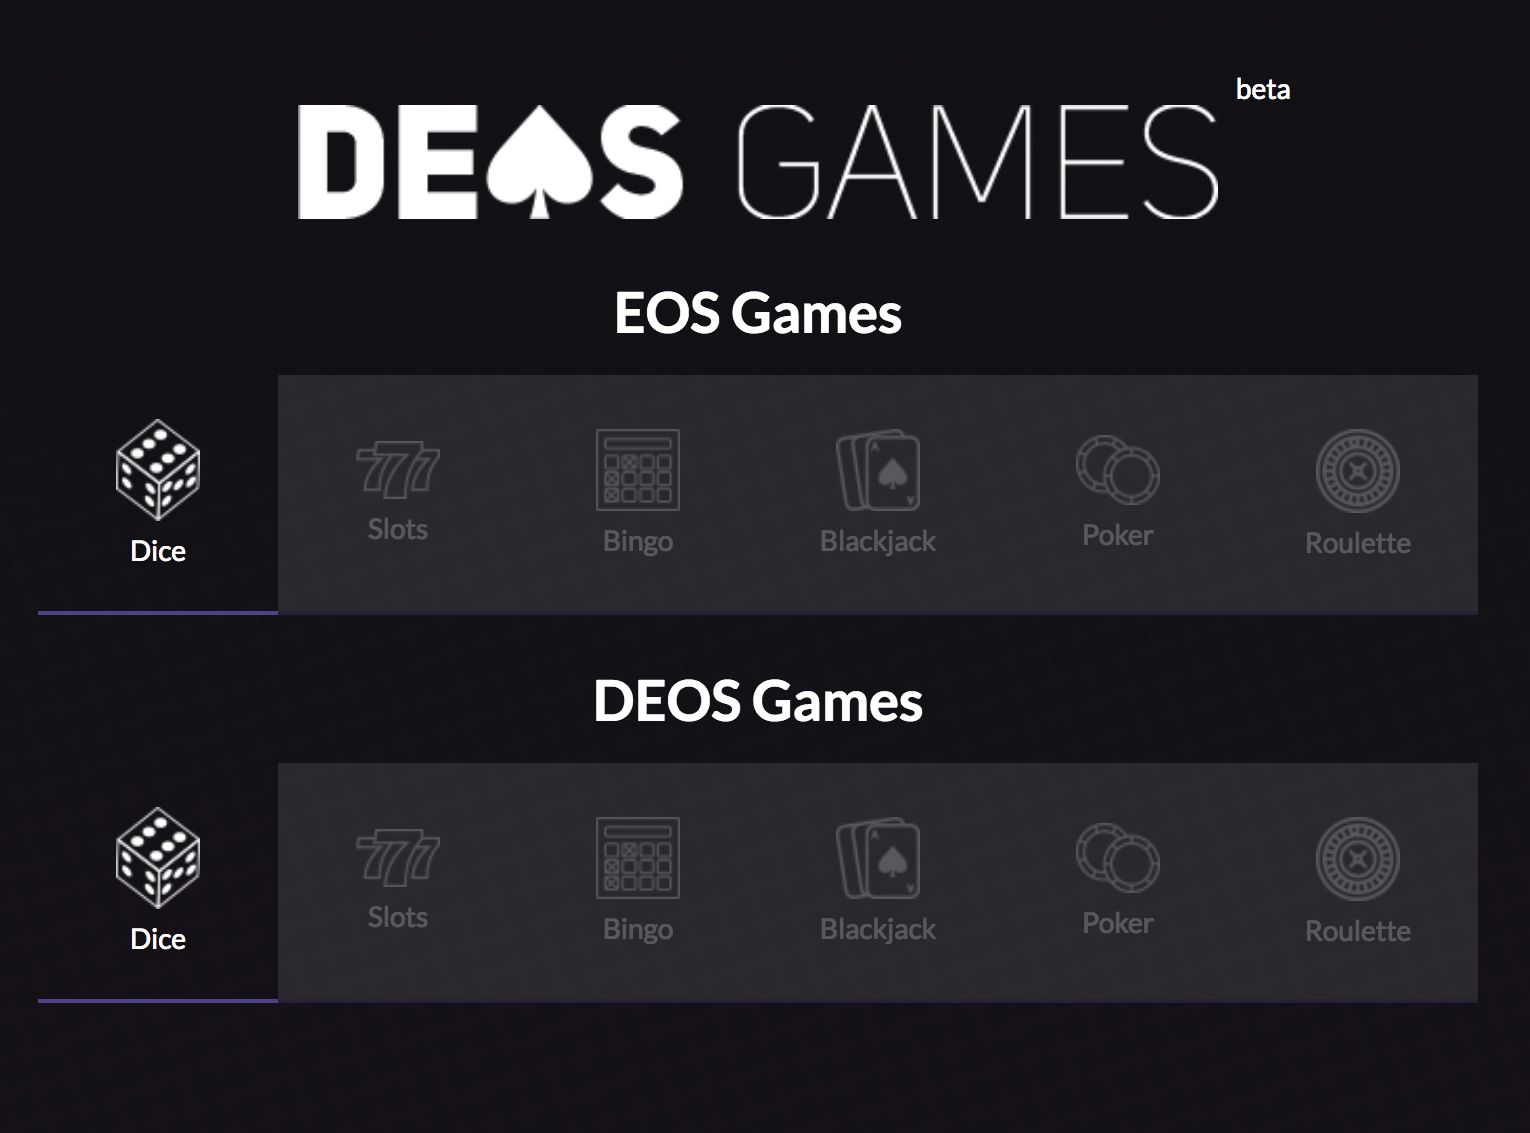 deos dice 110k update bet with eos referral system and rake back